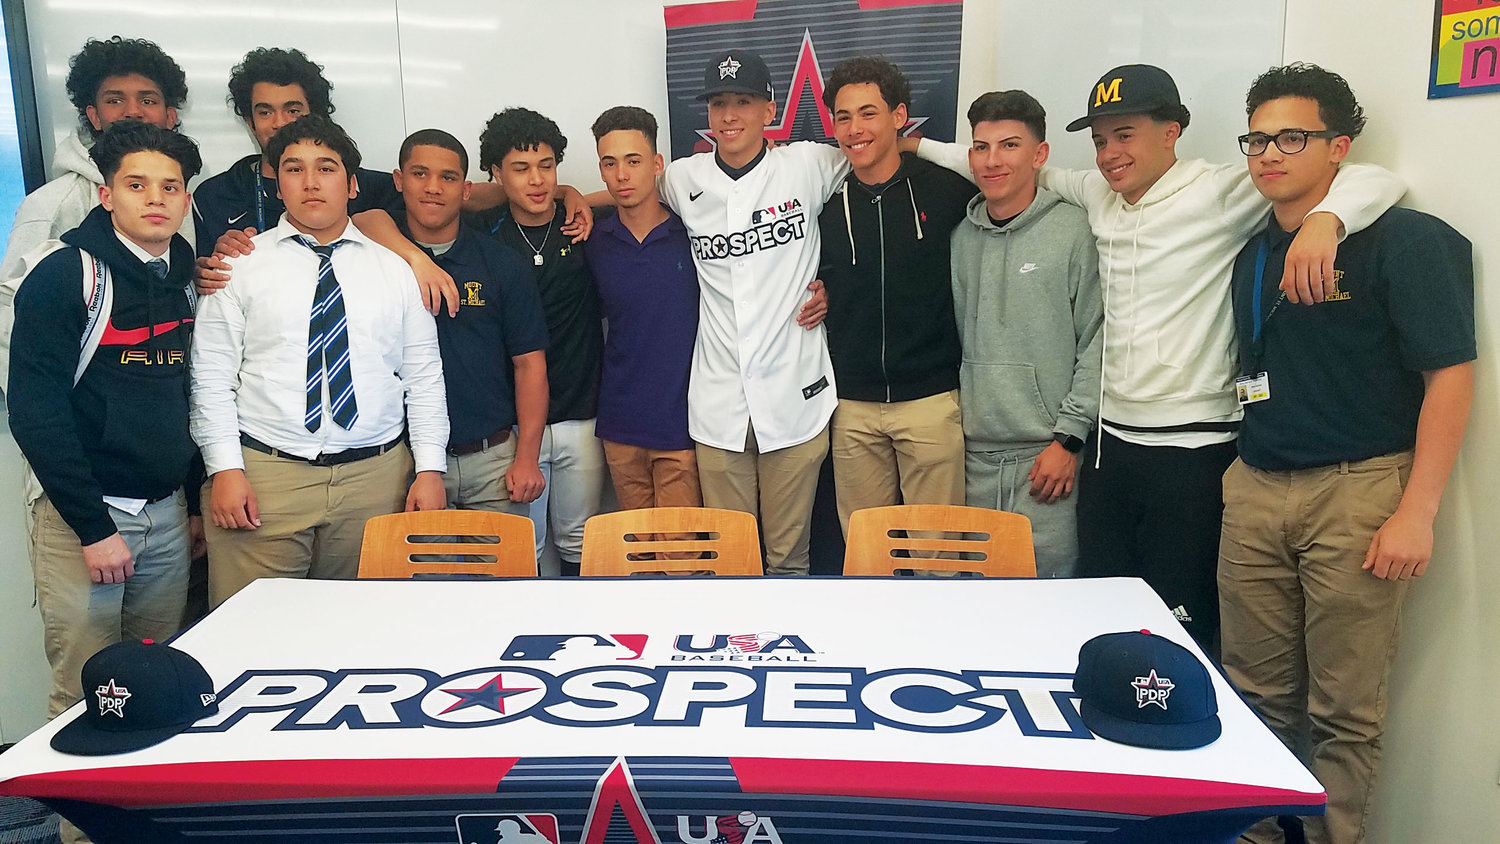 OFF TO CAMP—Alex Santos, center, joins his Mount St. Michael Academy teammates after being presented his jersey and cap for the inaugural Prospect Development Pipeline League in a ceremony May 16 at the Bronx school.